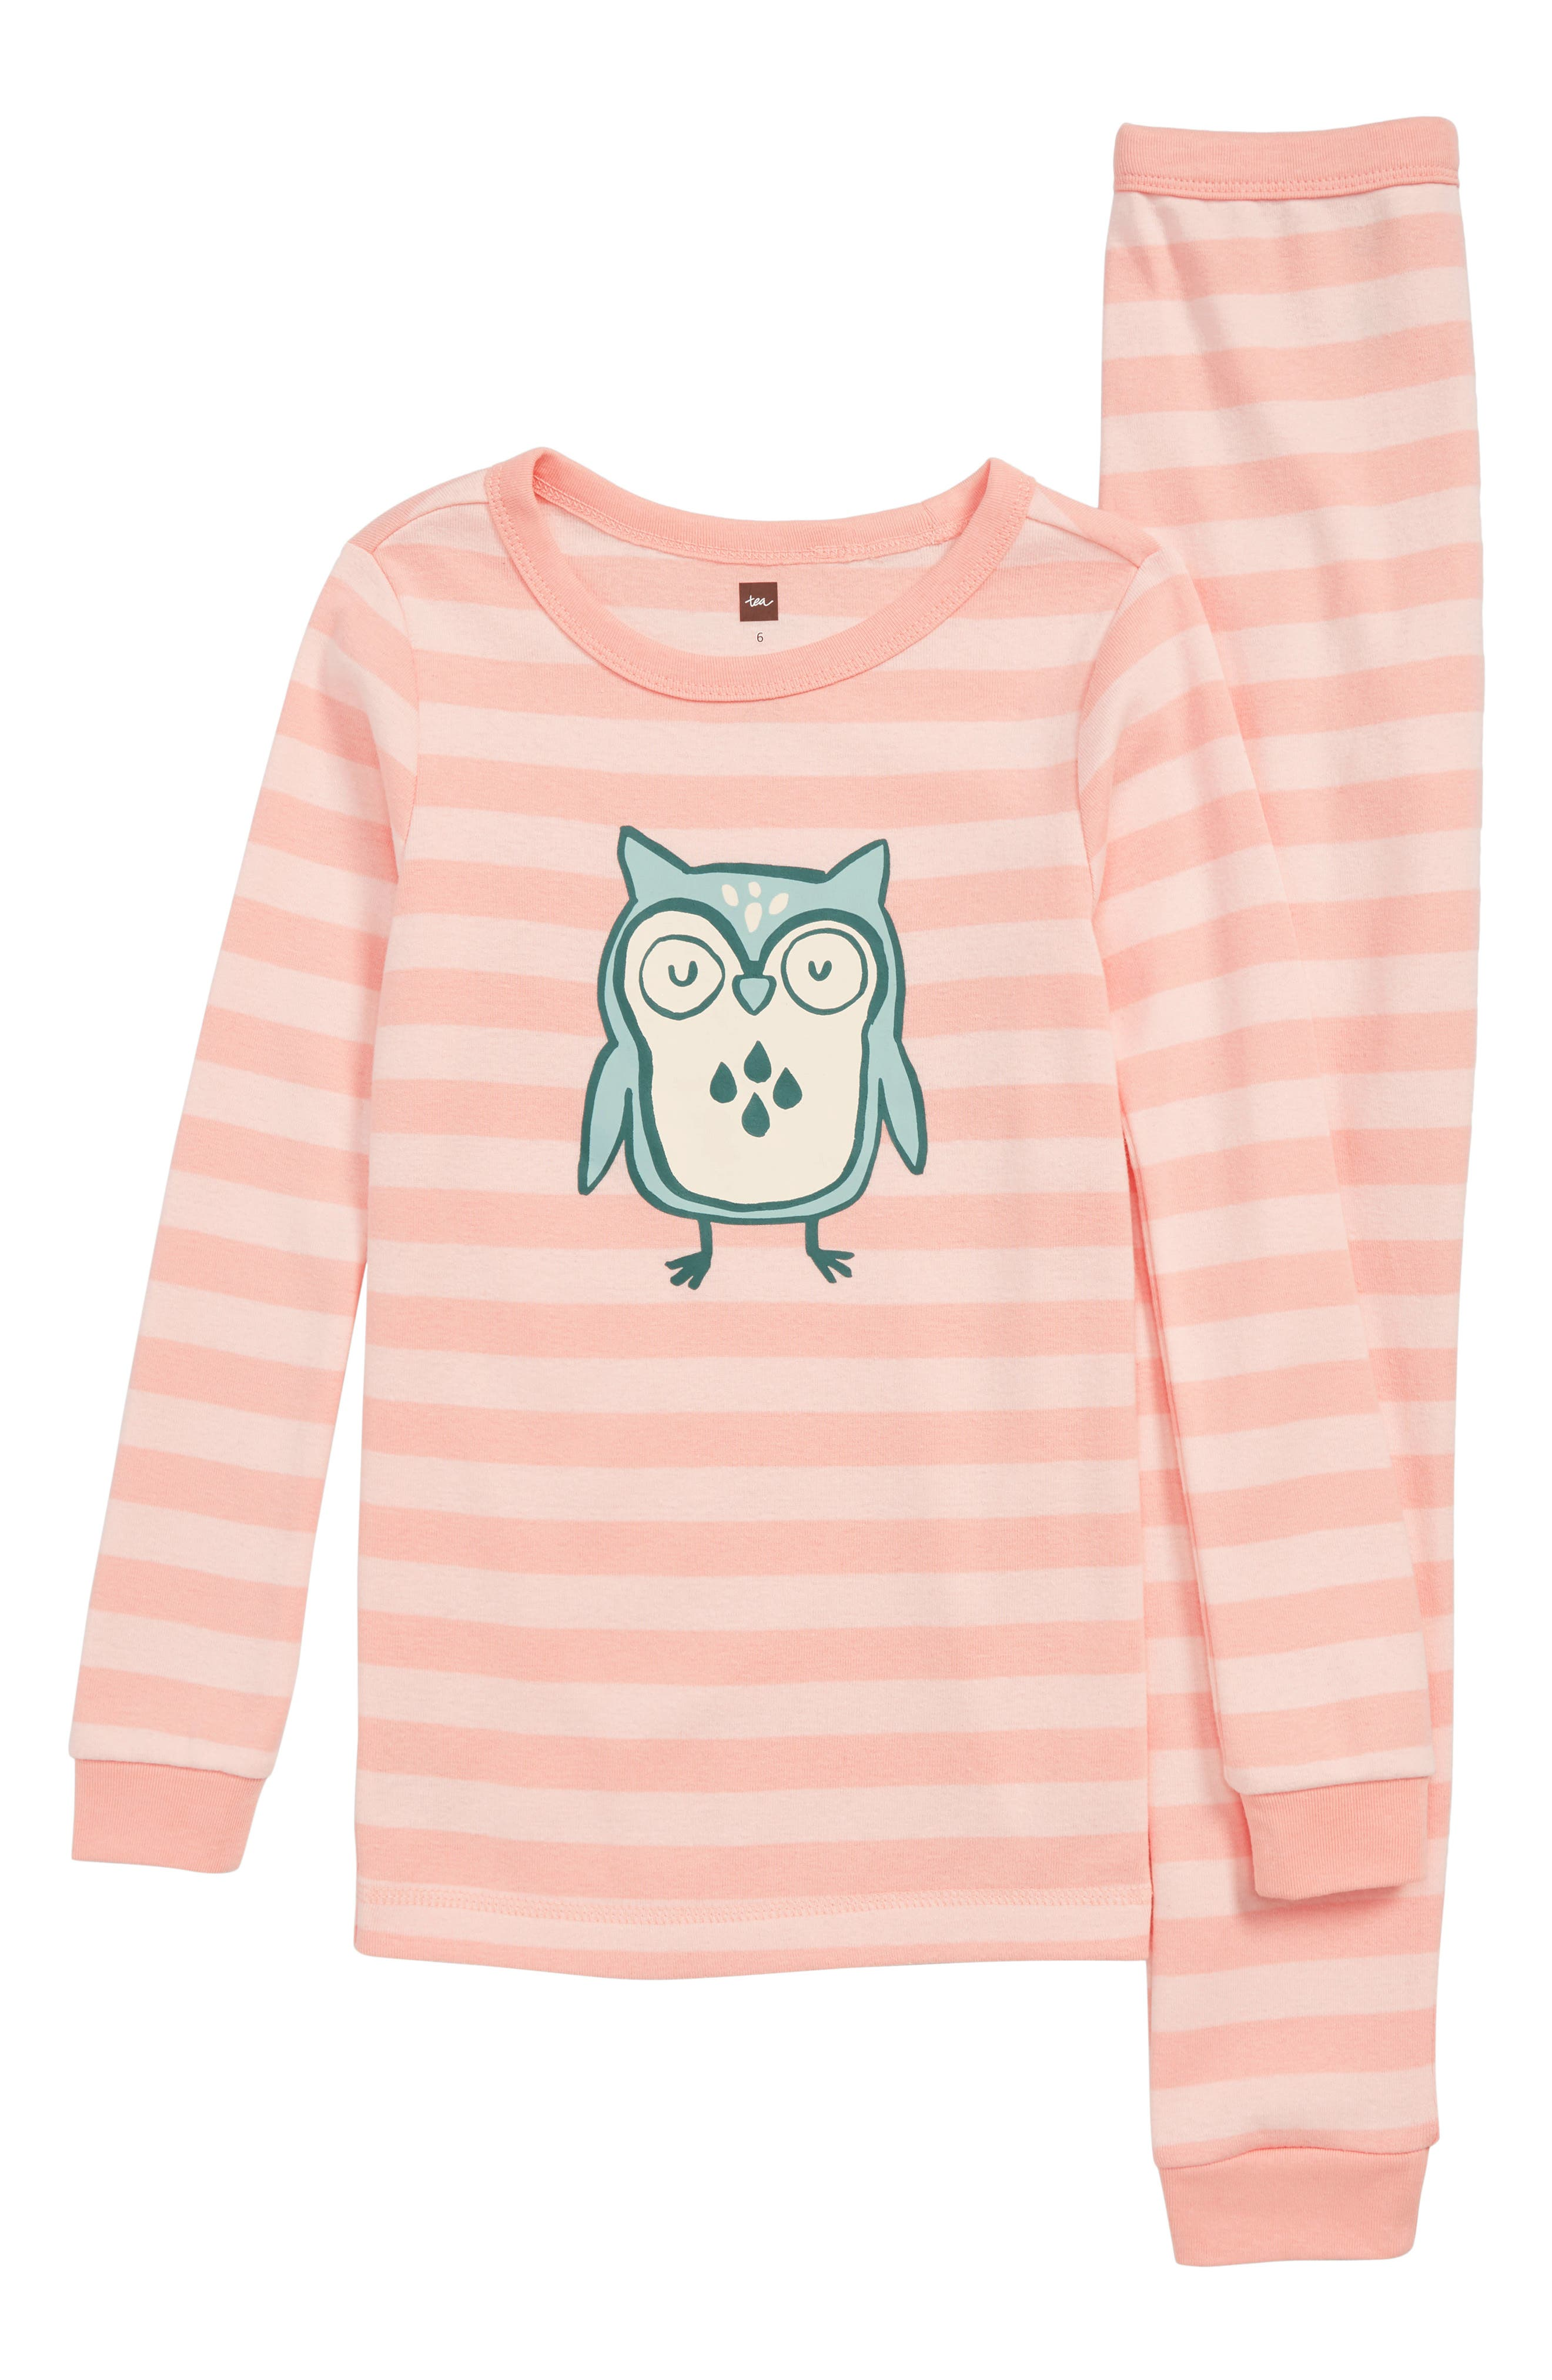 TEA COLLECTION Wise Owl Fitted Two-Piece Pajamas, Main, color, 690